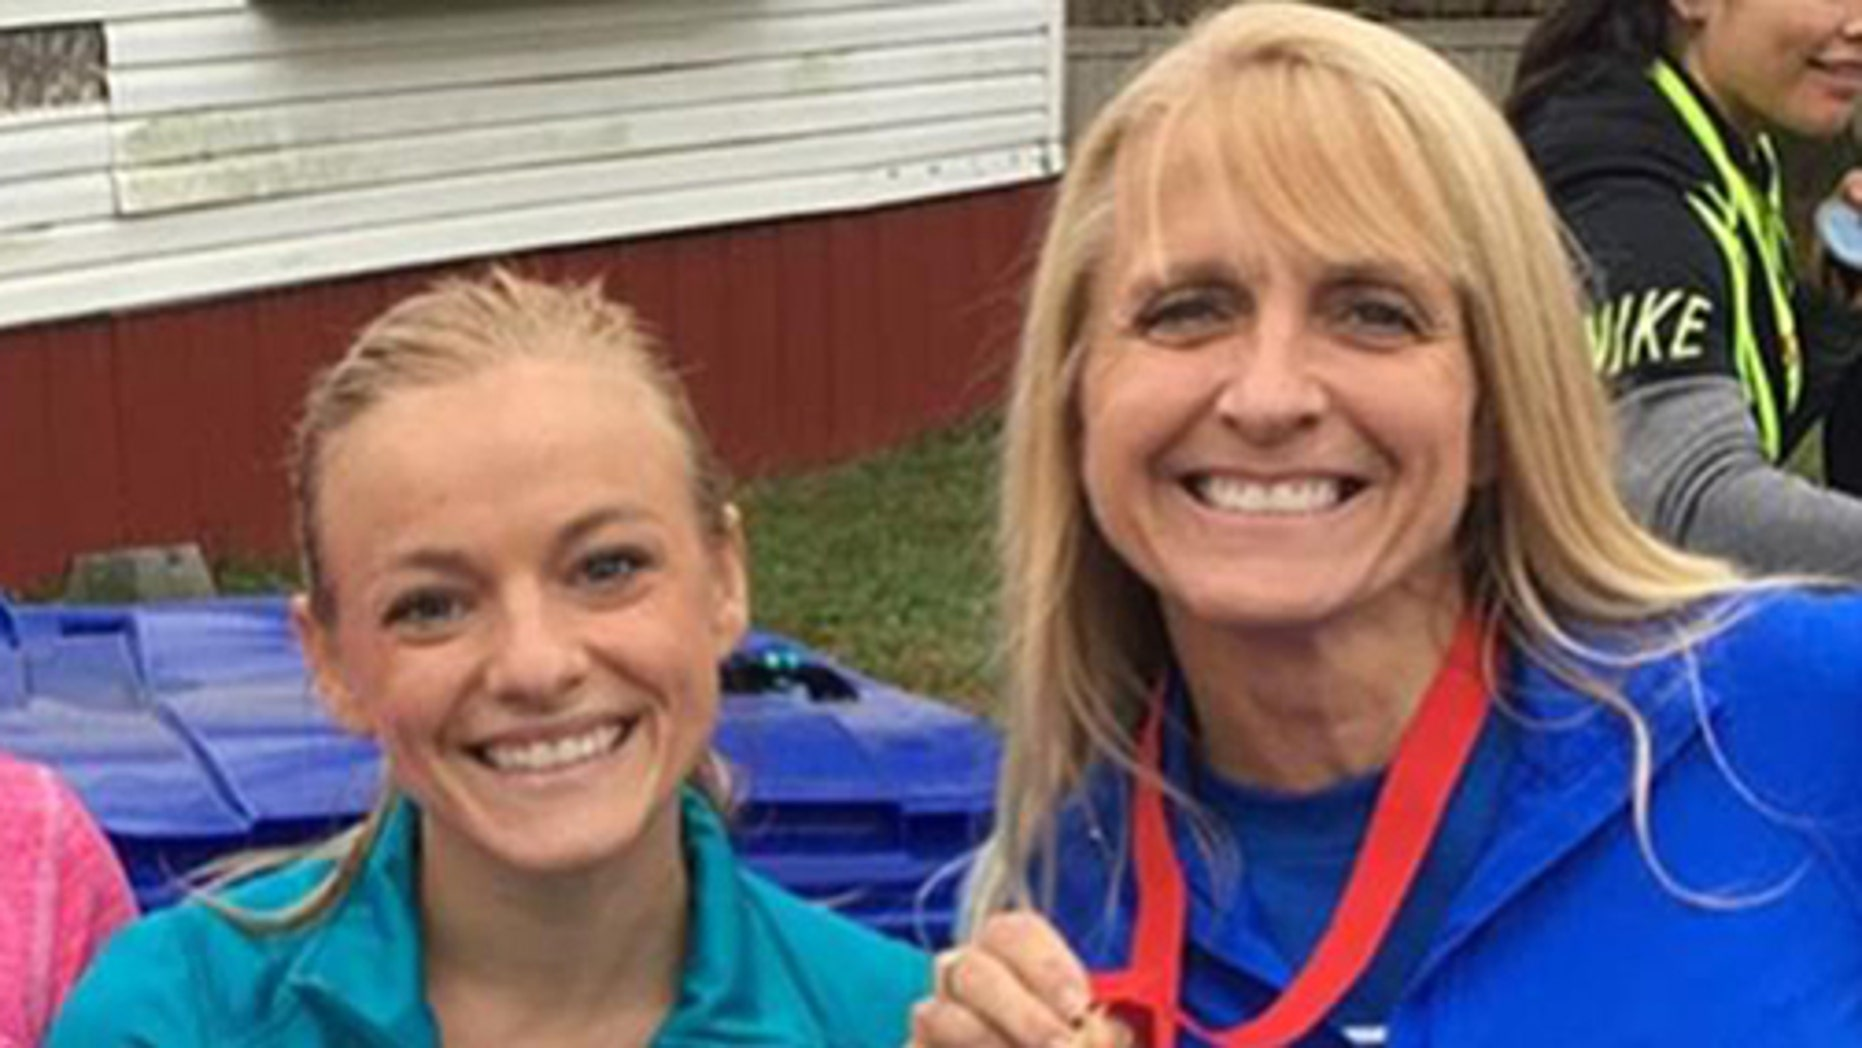 Mackenzie Mckee and mother, Angie Douthit,  ask fans for prayers after Angie's recent cancer diagnosis. Here the pair pose for a photo after a diabetes awareness run  in November 2017.